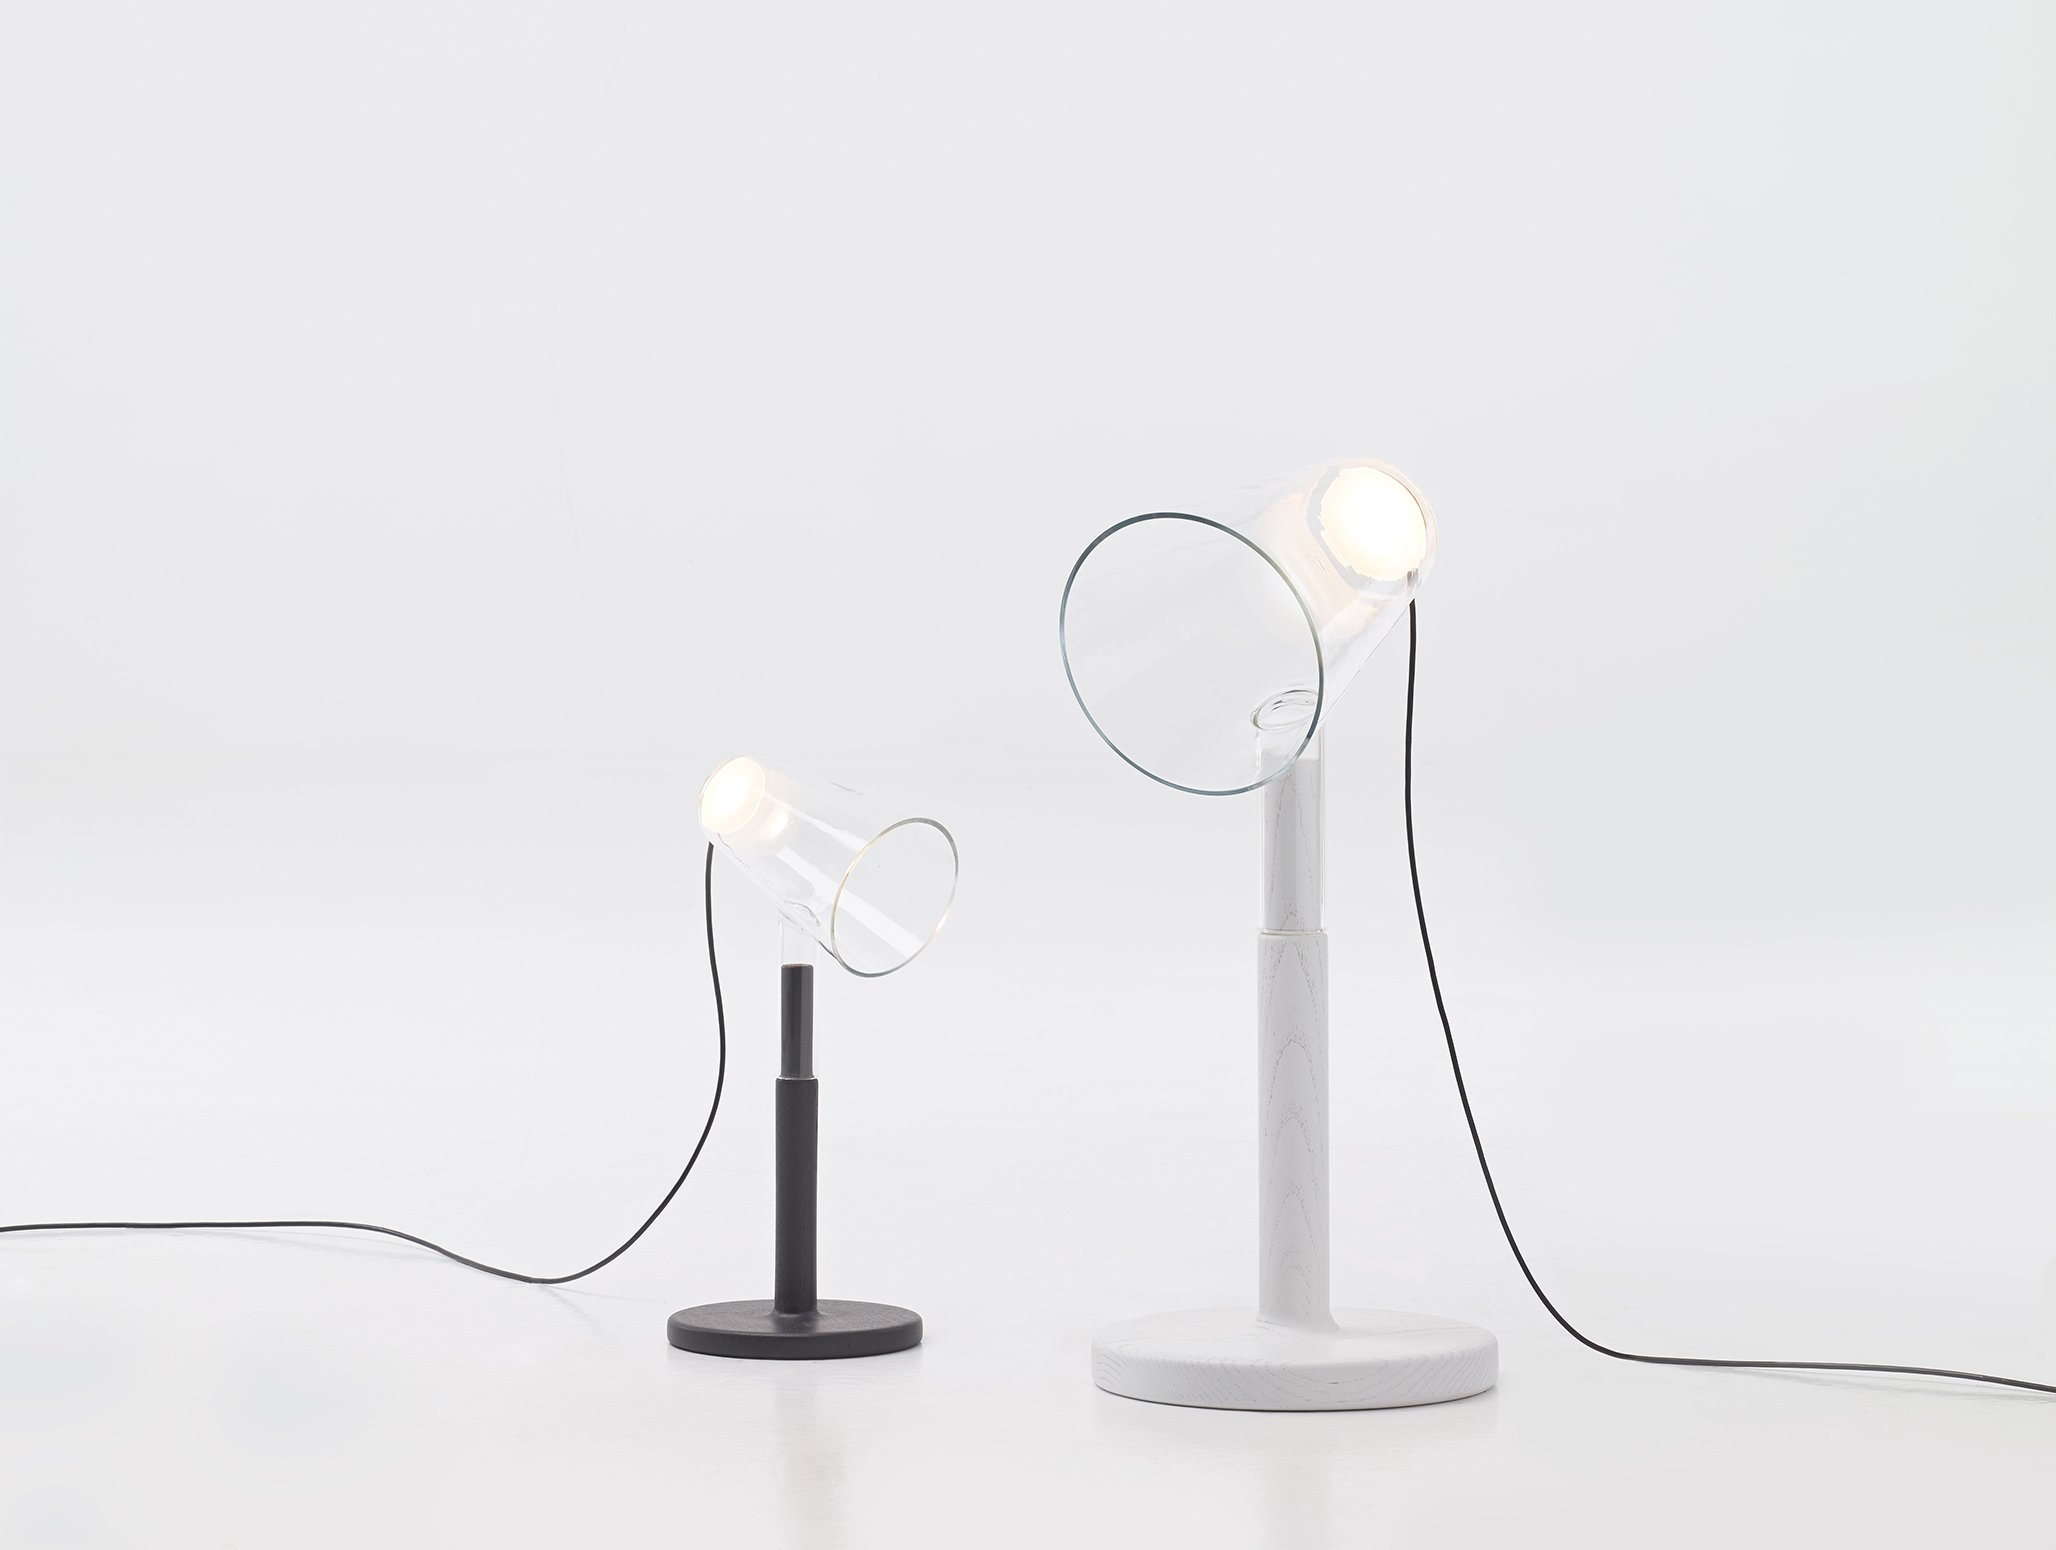 The Siblings Lamps by PERUSE